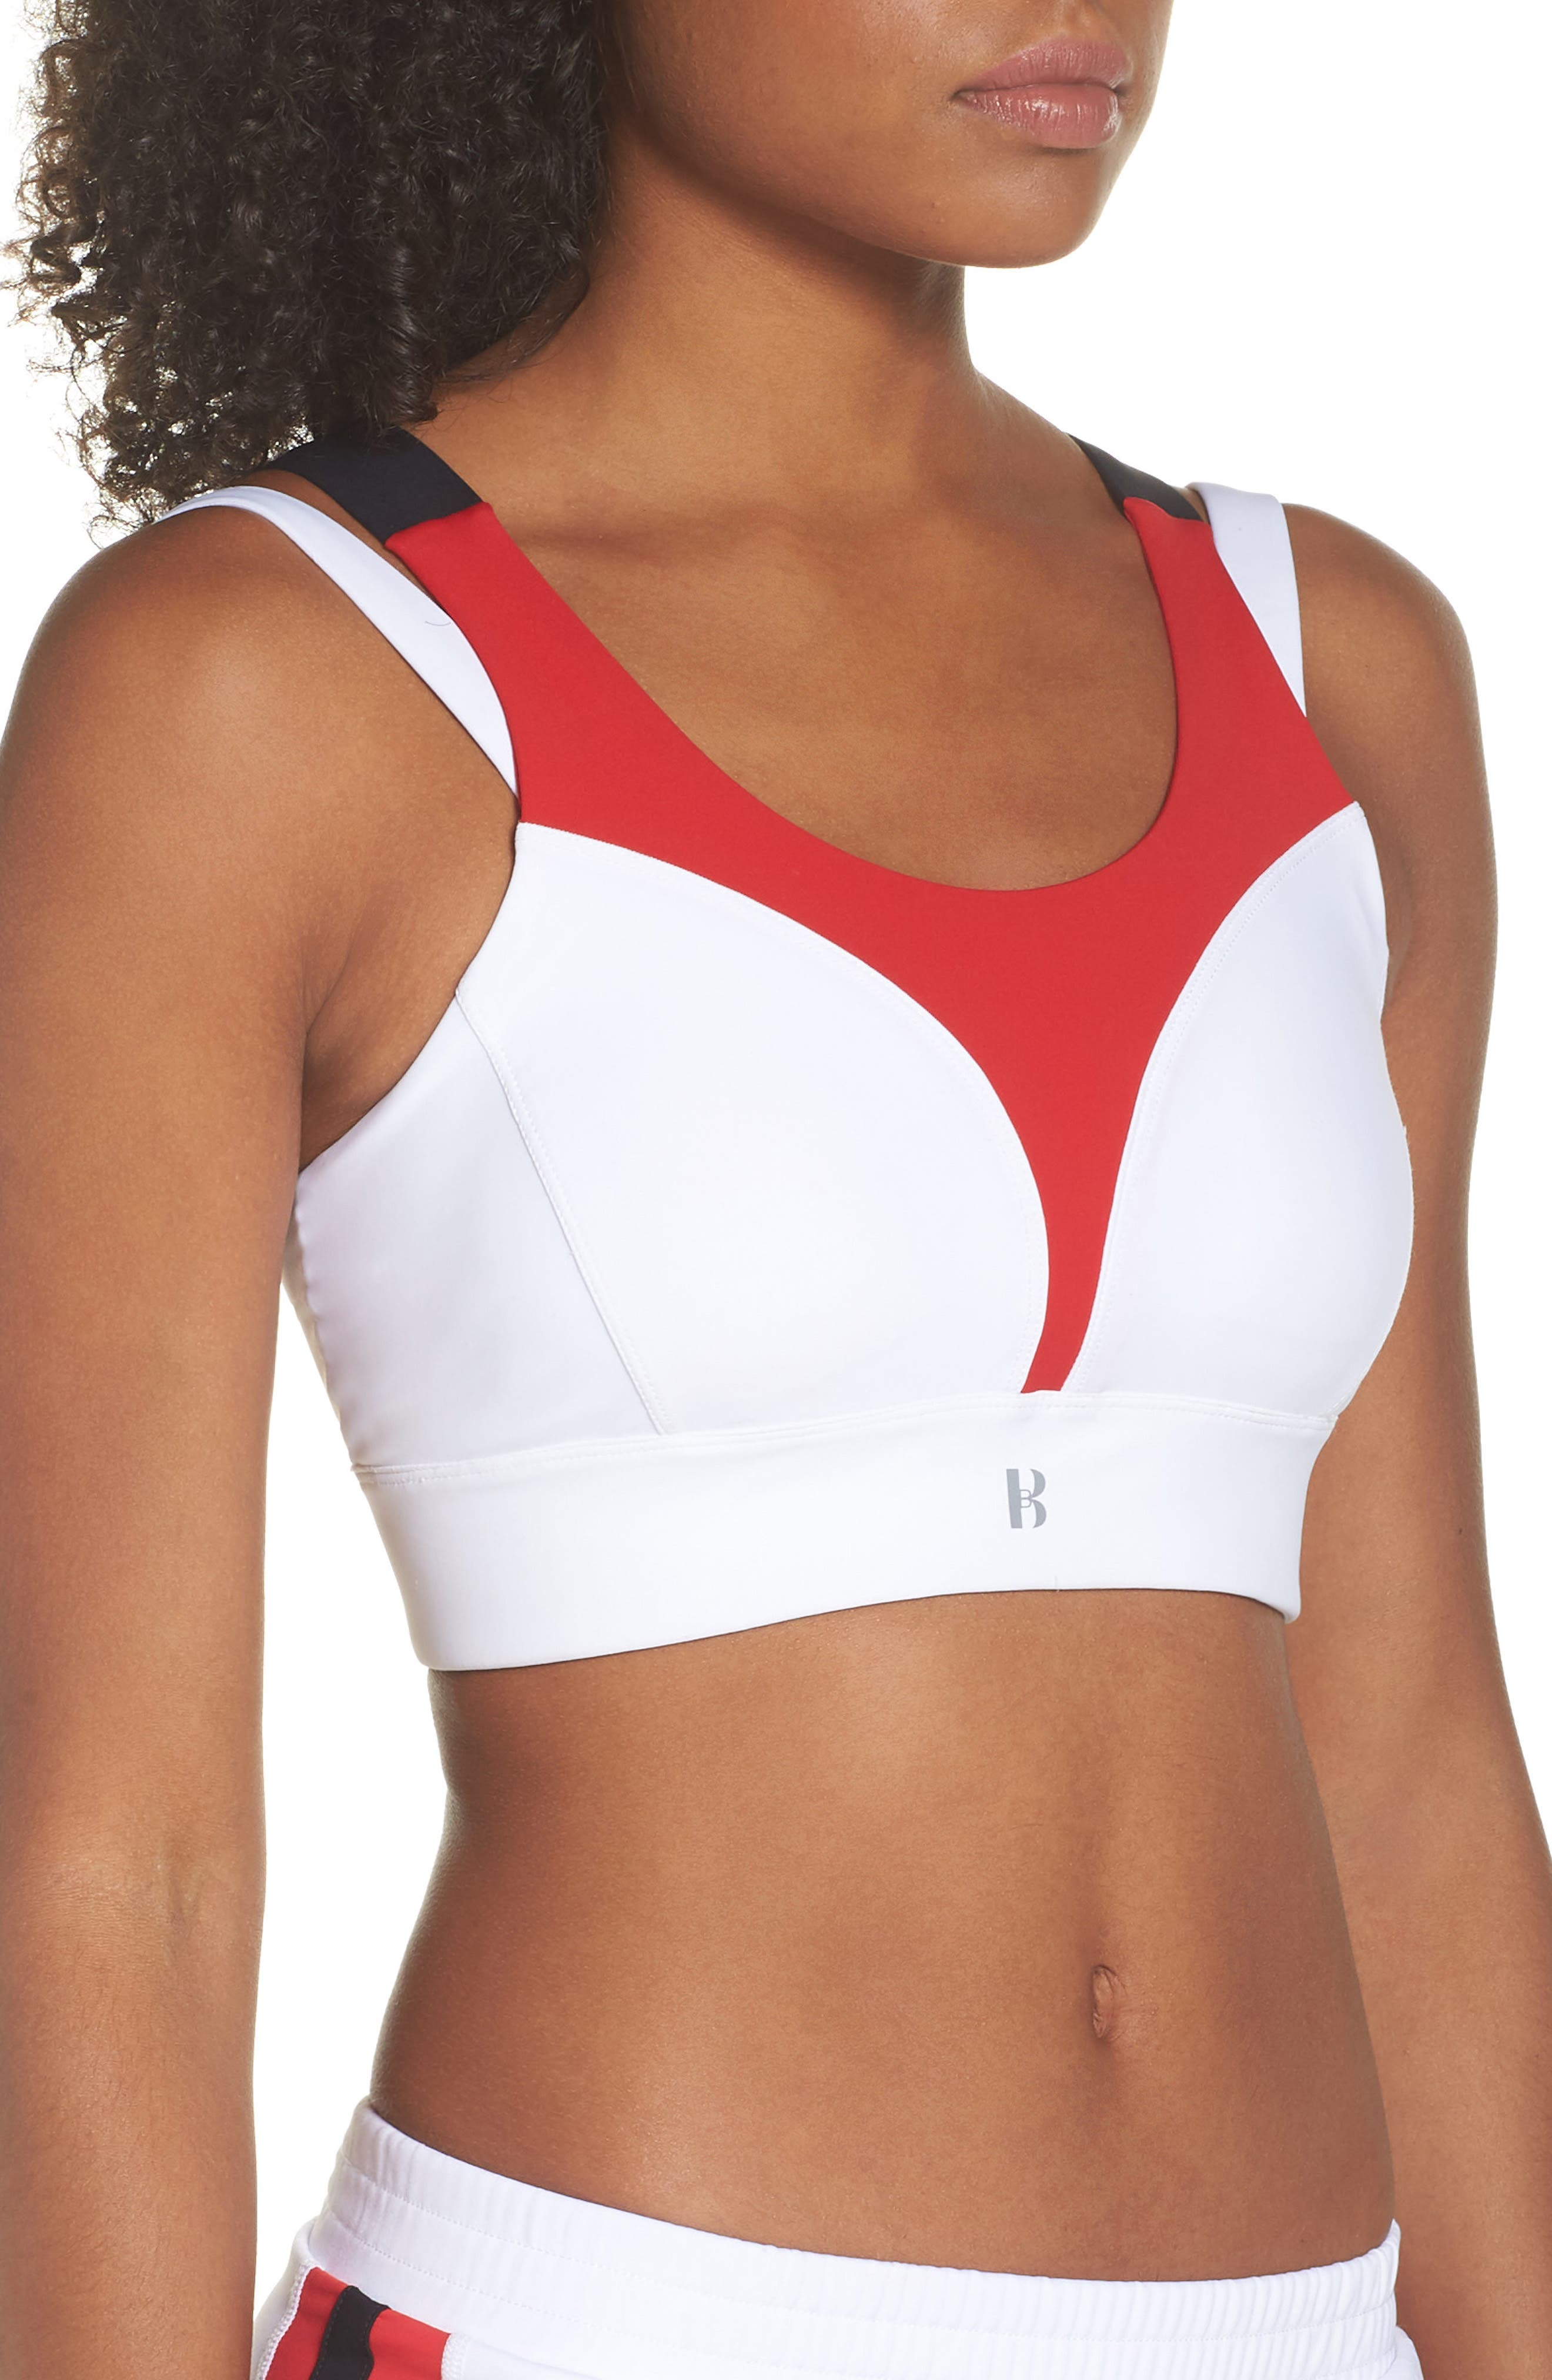 BoomBoom Athletica Compression Support Sports Bra,                             Alternate thumbnail 3, color,                             WHITE/ RED